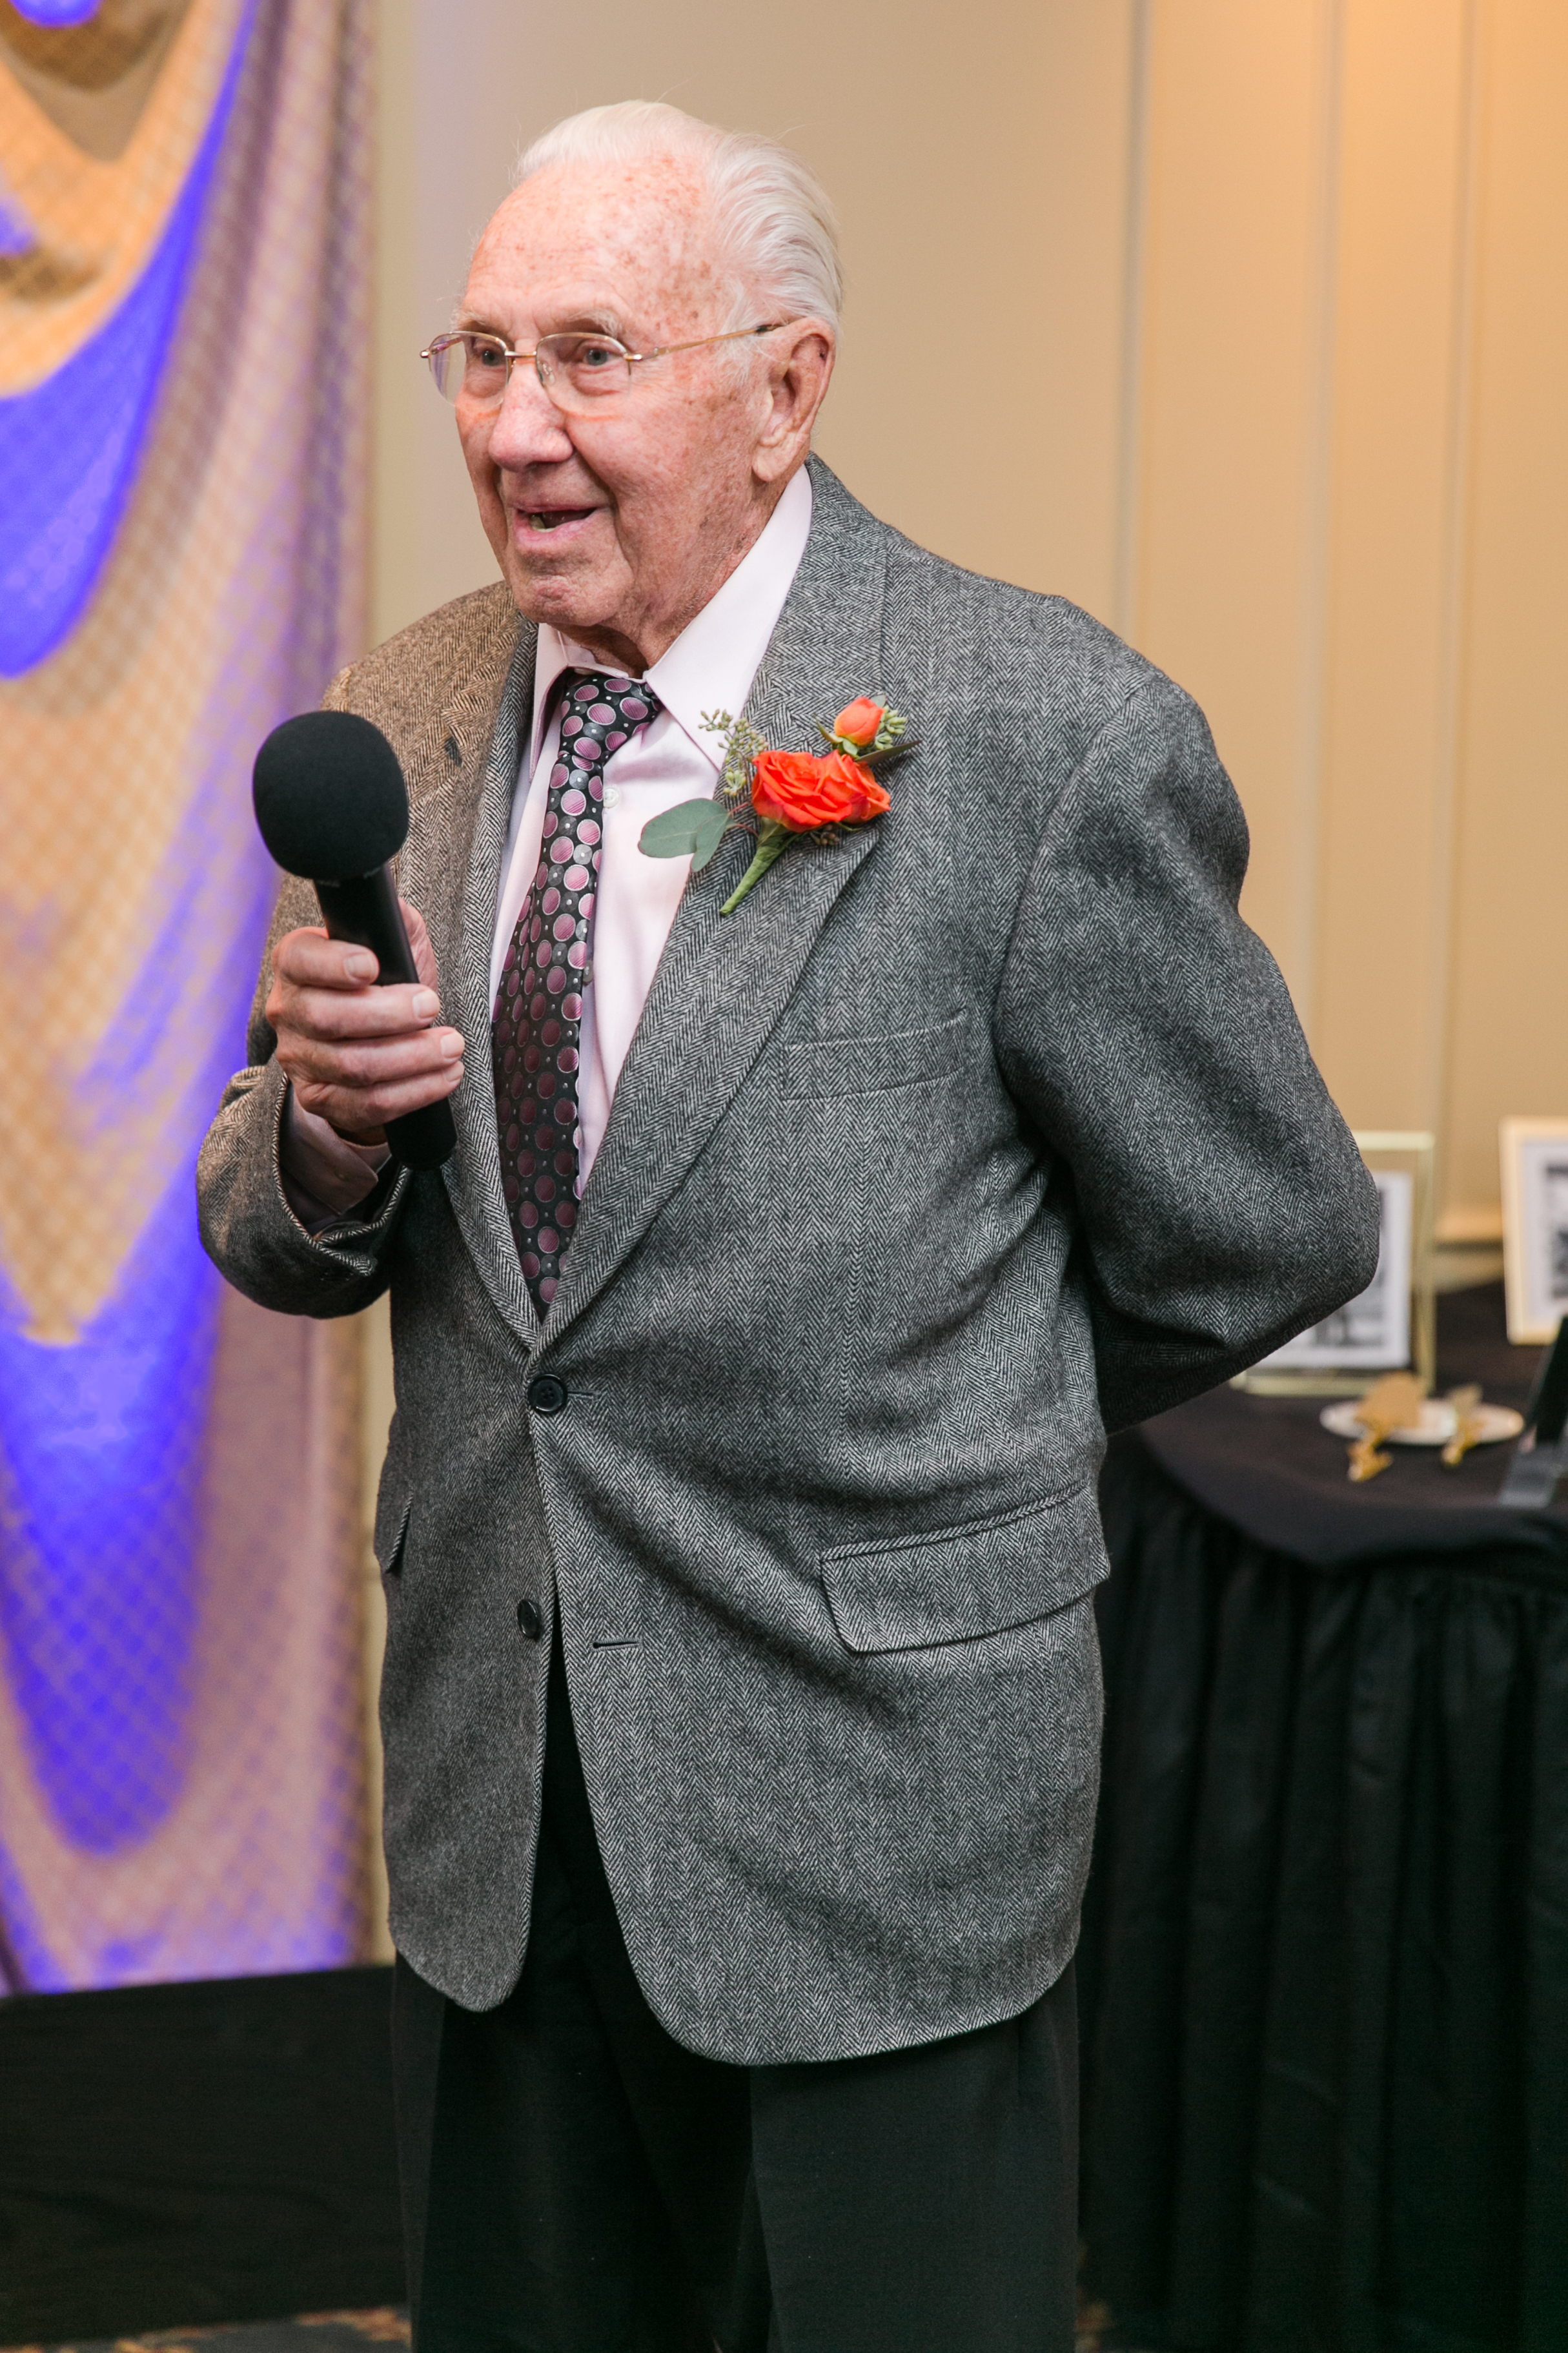 """This gentleman delivered one of the best speeches I have heard at a wedding! He had the entire room laughing. At one point during the night, Nick looked at me and said, """"Grandpa is kinda badass!"""" That is the TRUTH! He is awesome."""